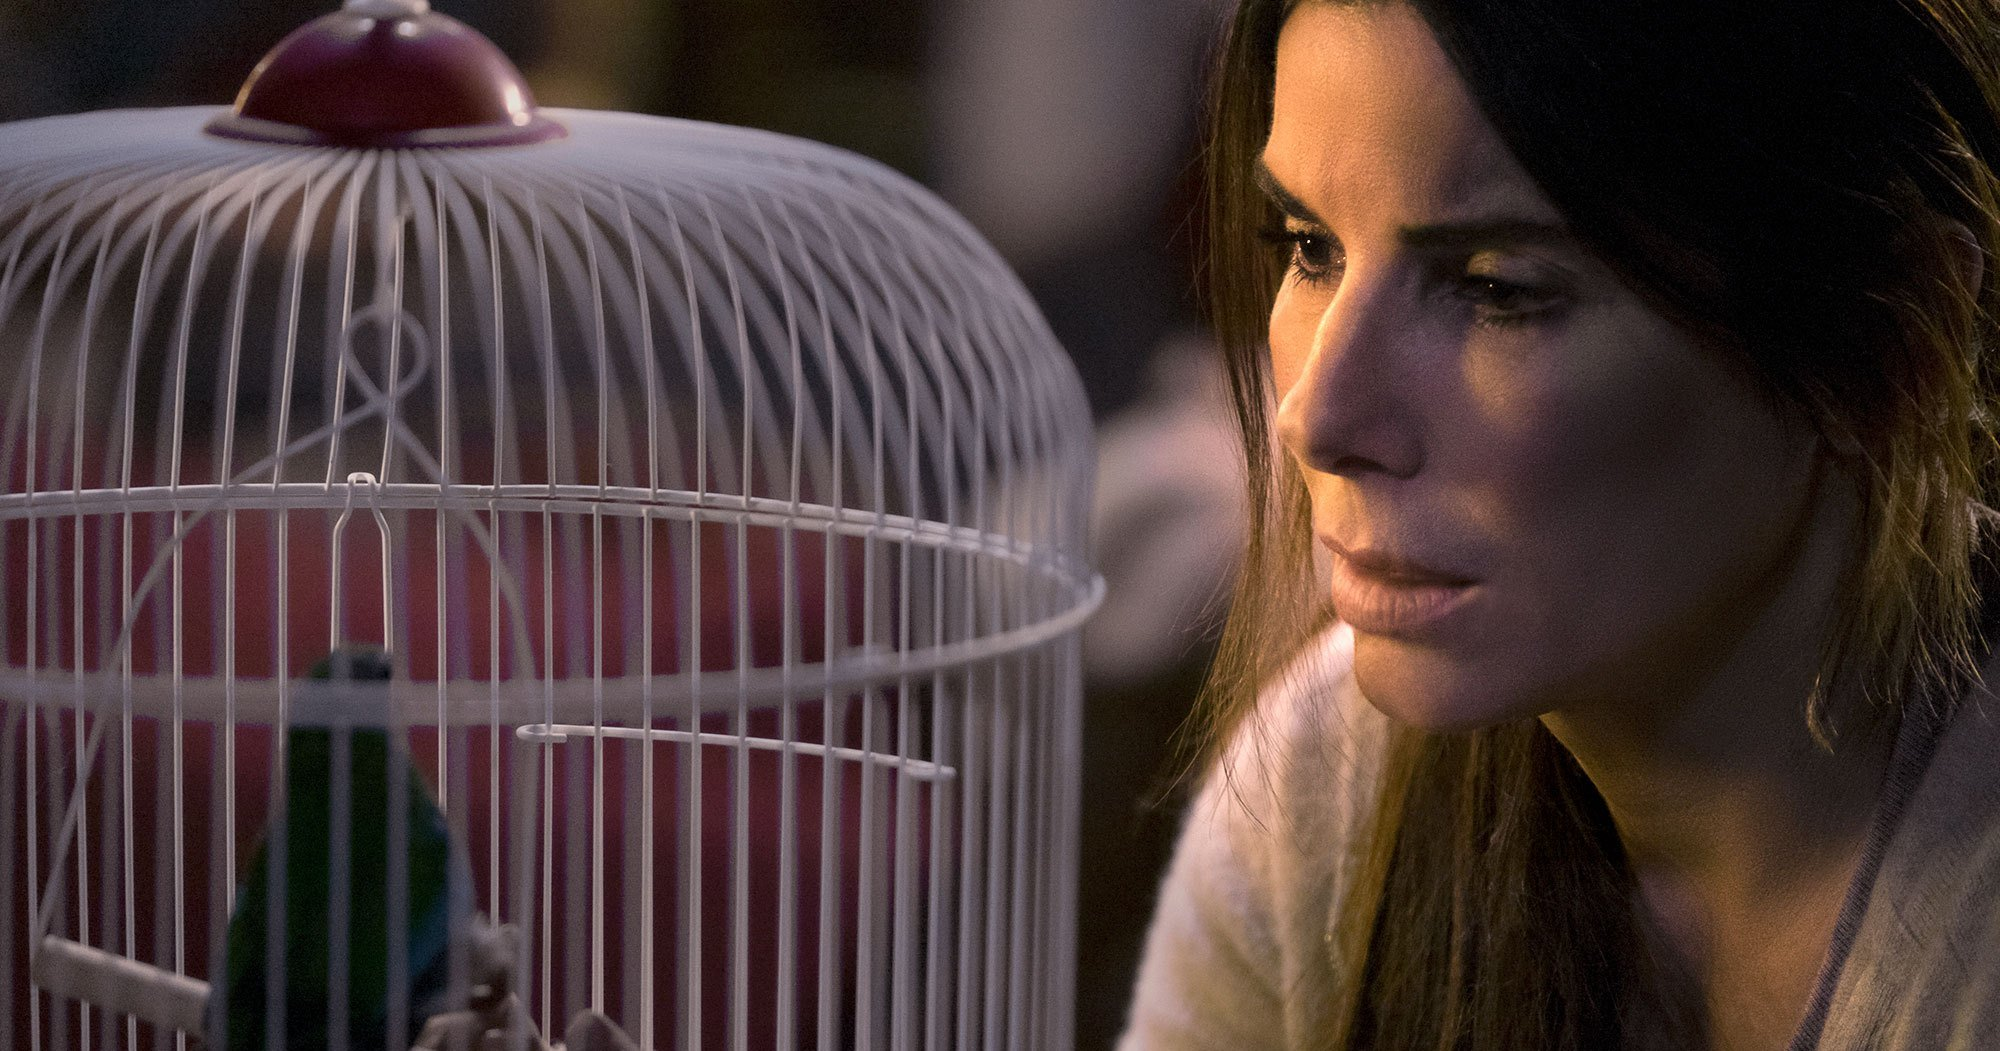 Sandra Bullock's Fans Defend Her as More Than 'That Lady